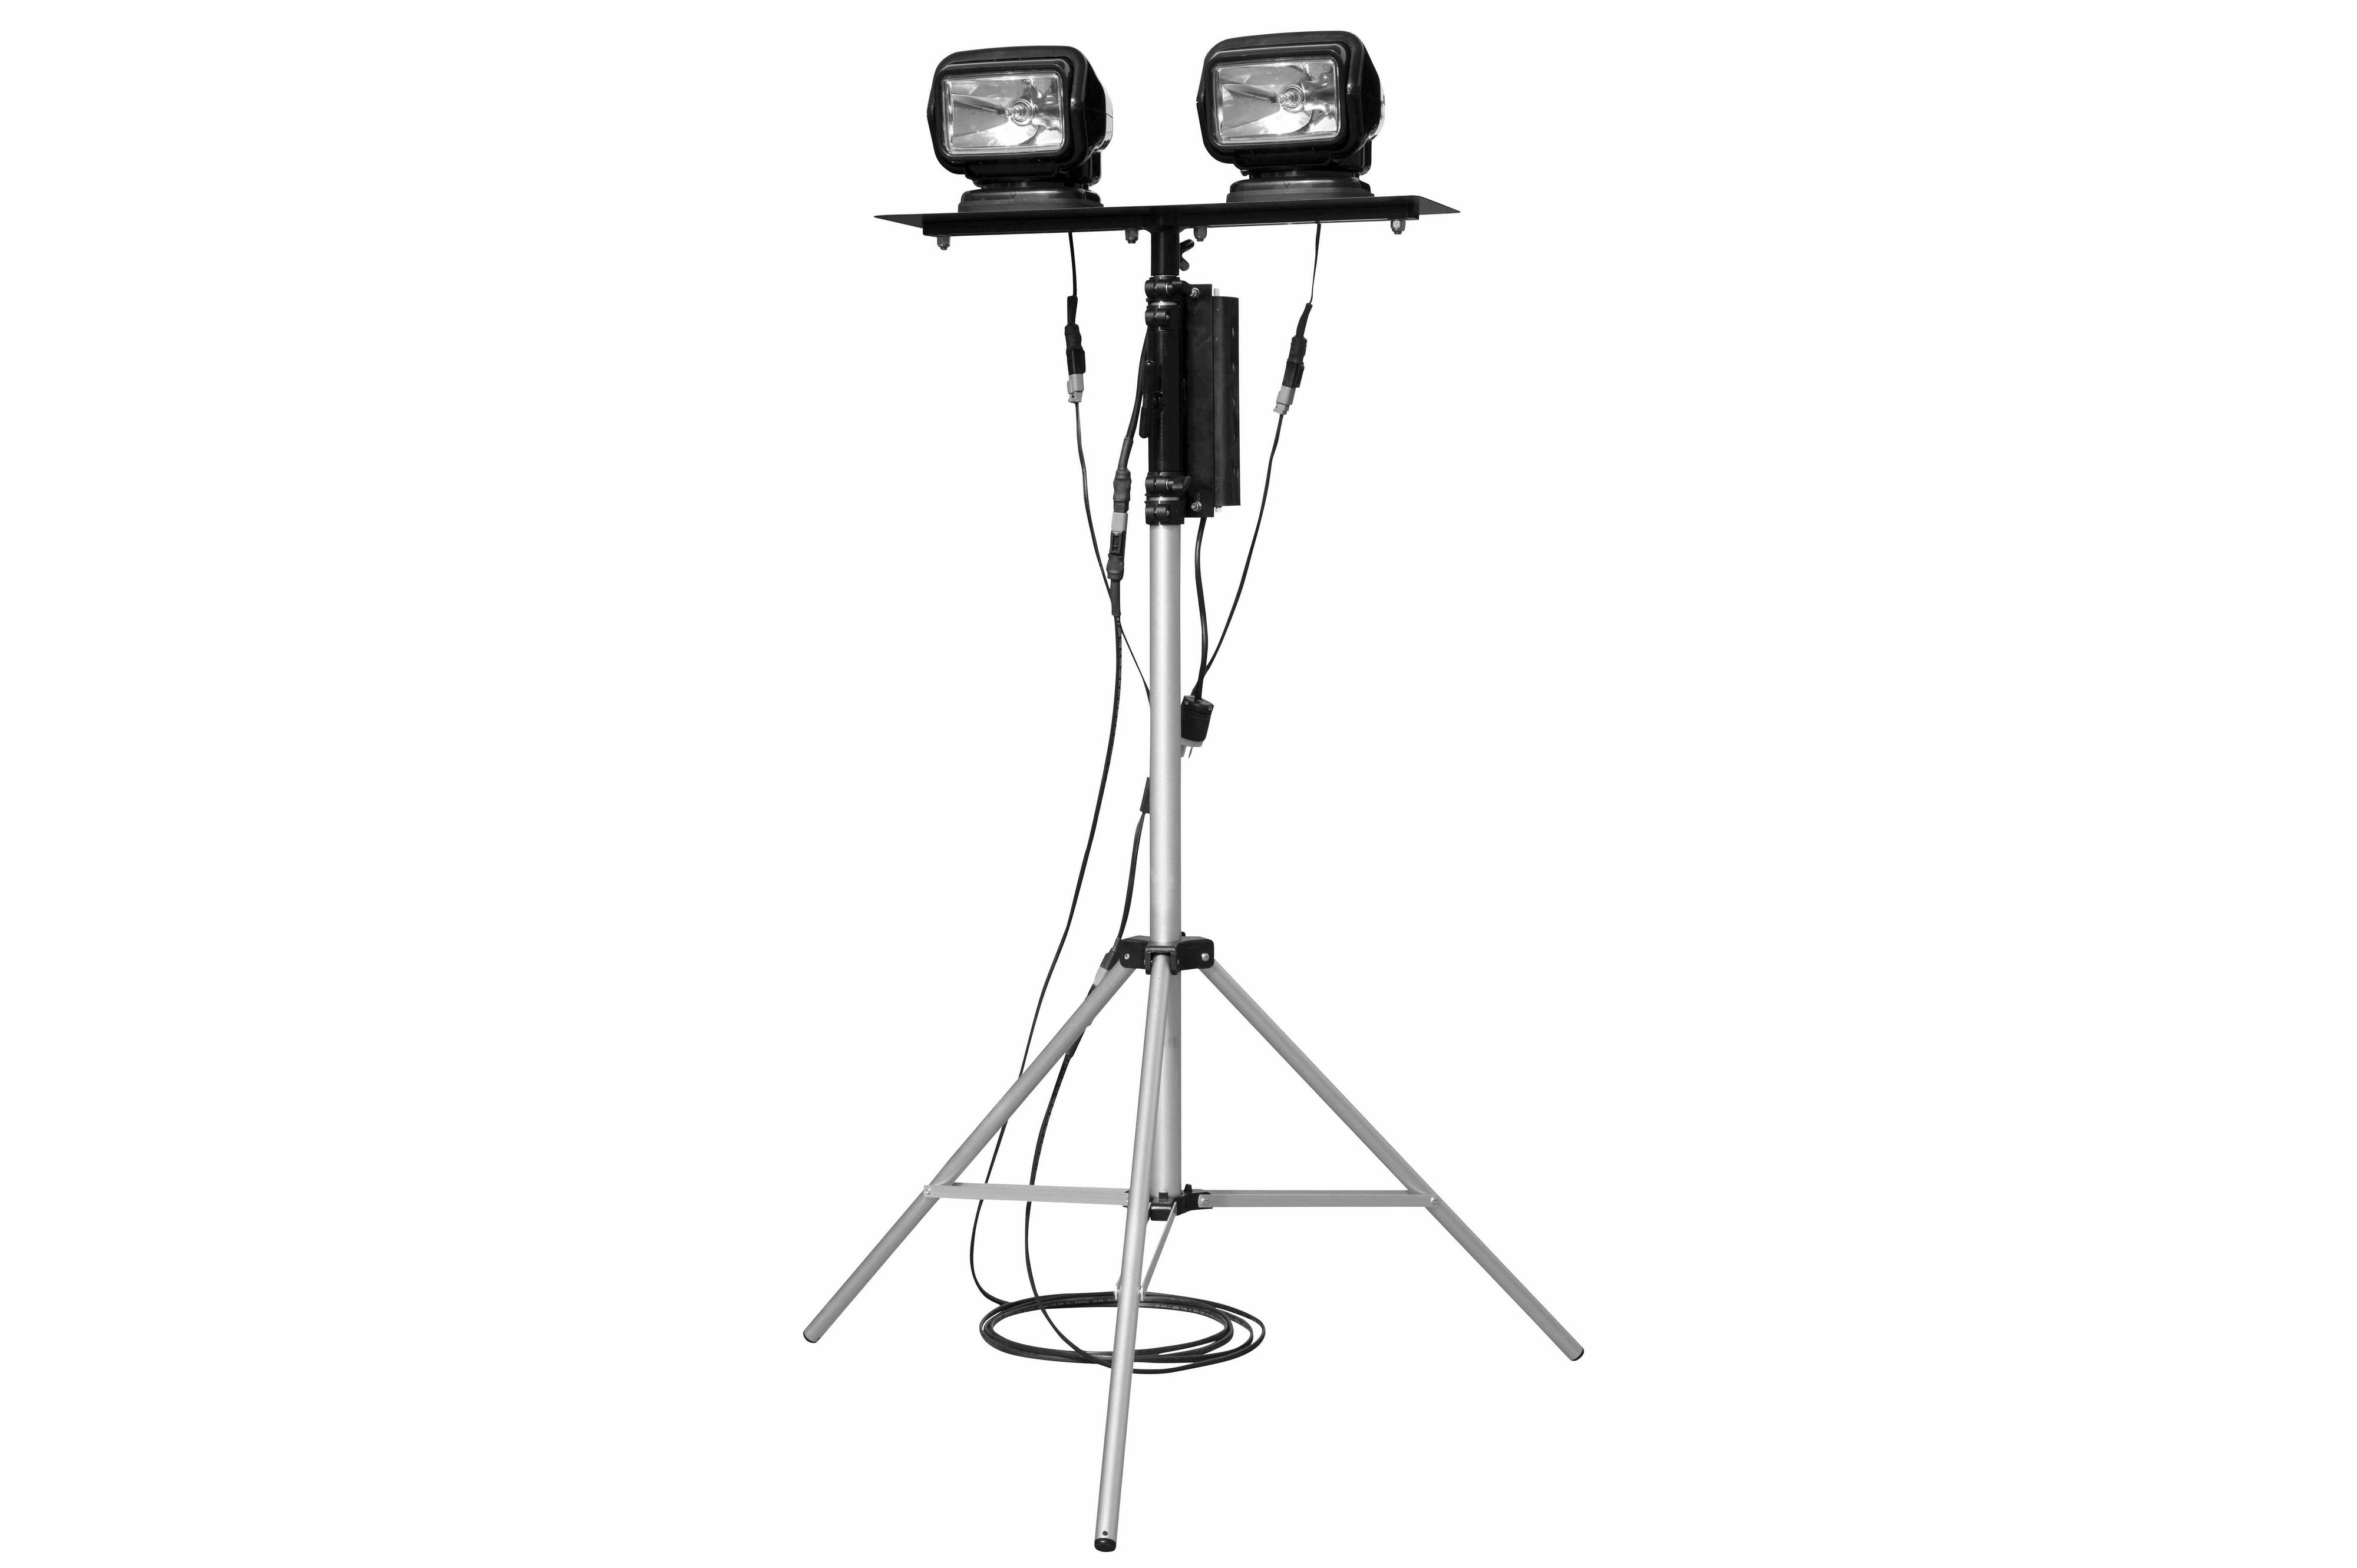 Portable Telescoping Light Tower